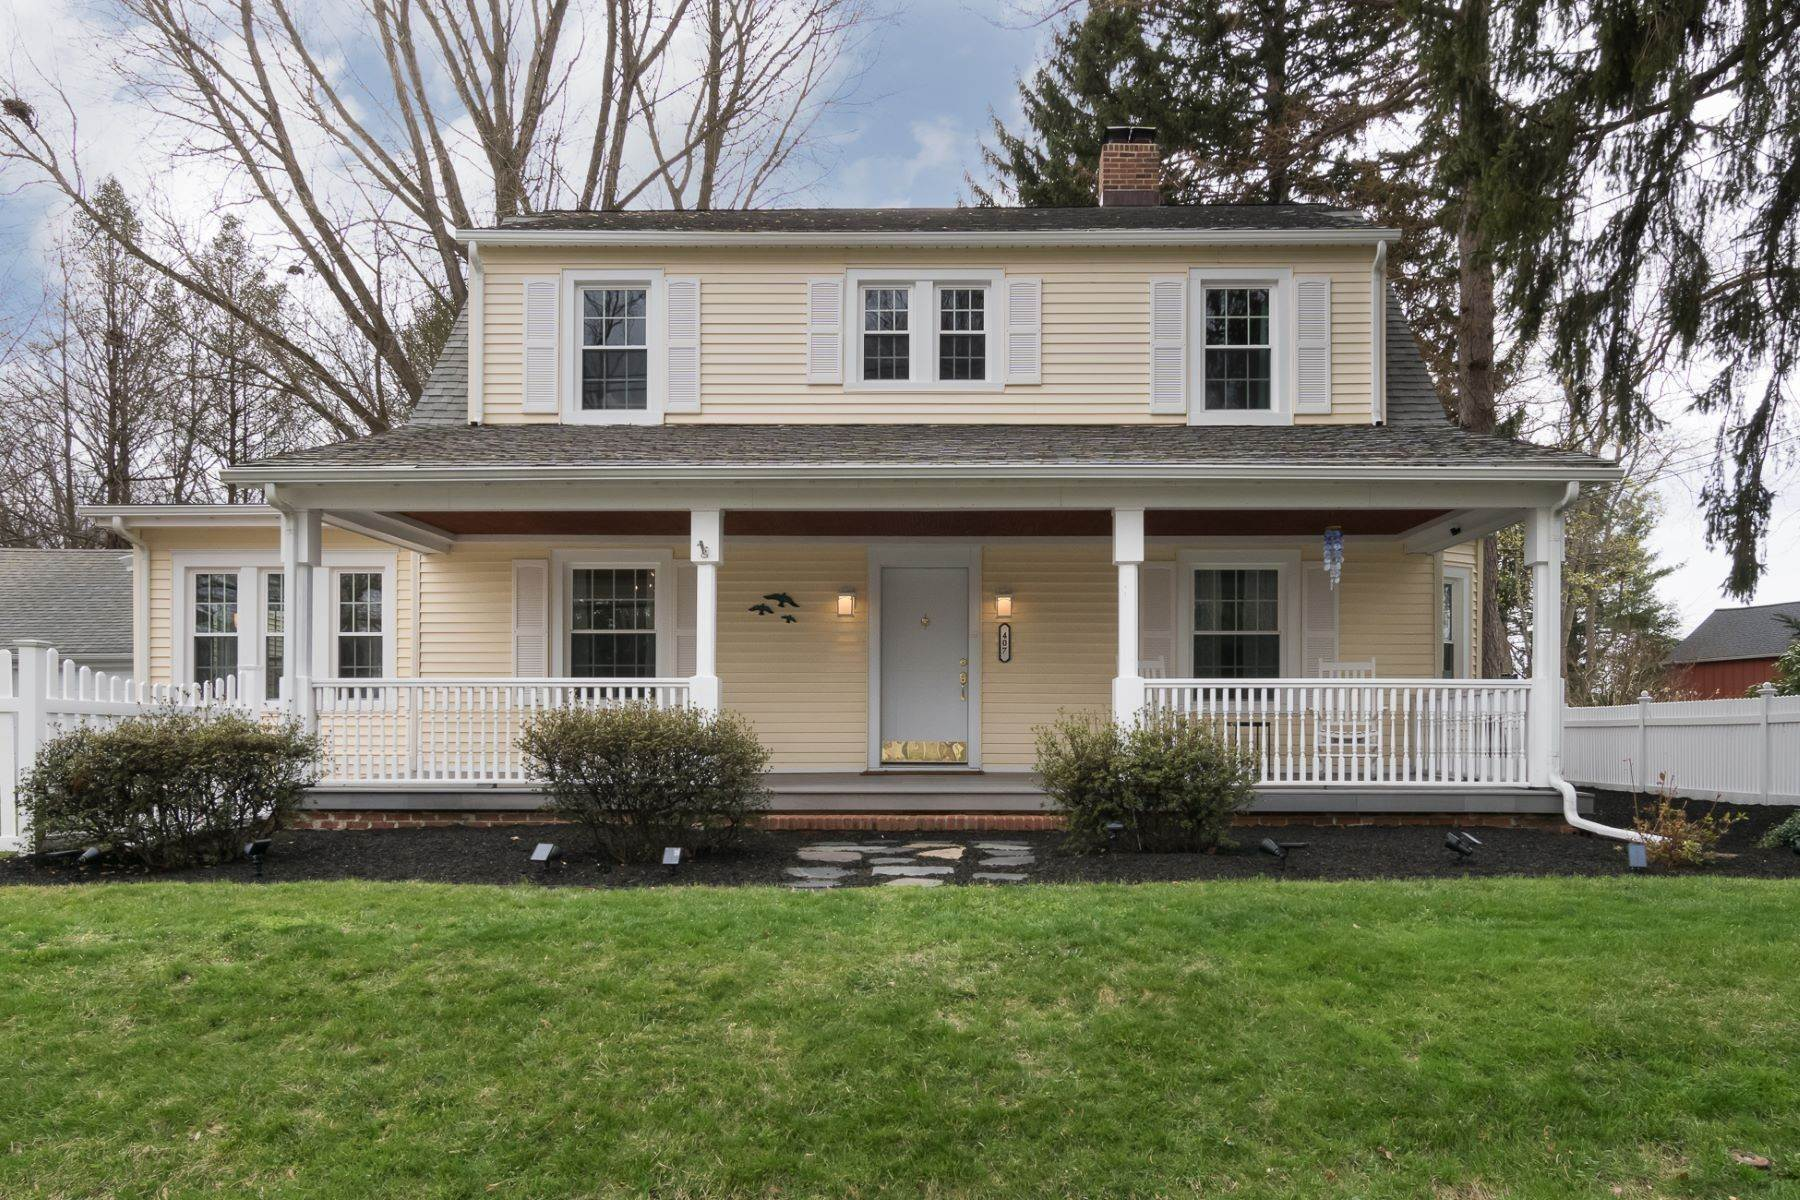 Single Family Homes for Sale at Renovated and Rejuvenated Inside and Out 407 Village Road East Princeton Junction, New Jersey 08550 United States